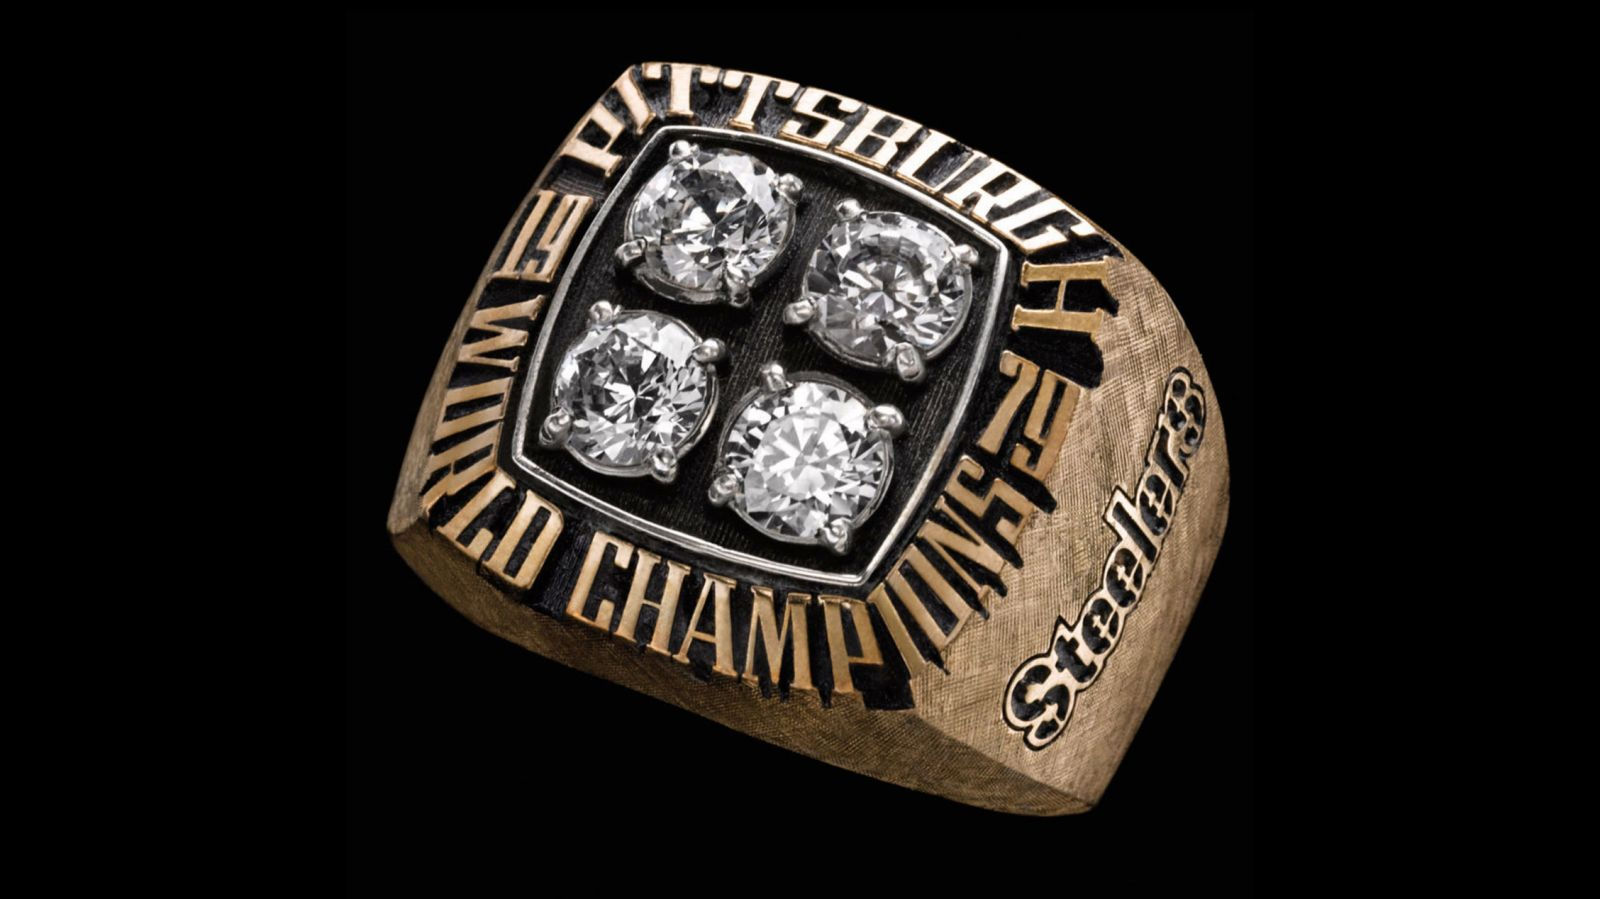 1979 Pittsburgh Steelers Super Bowl Championship Ring